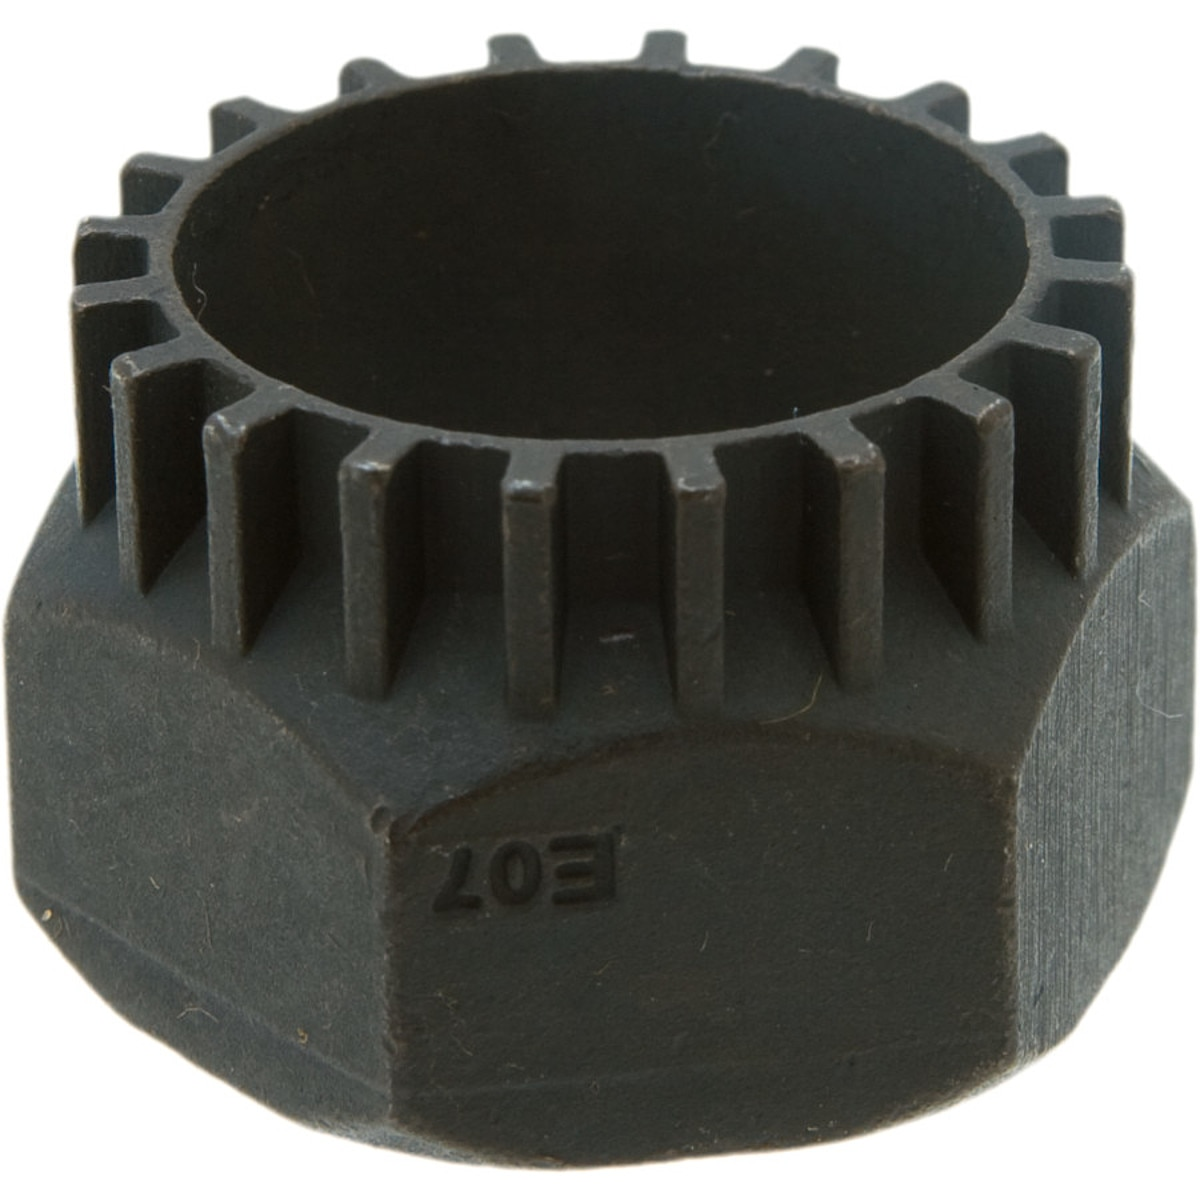 bracket Isis tool bottom cup